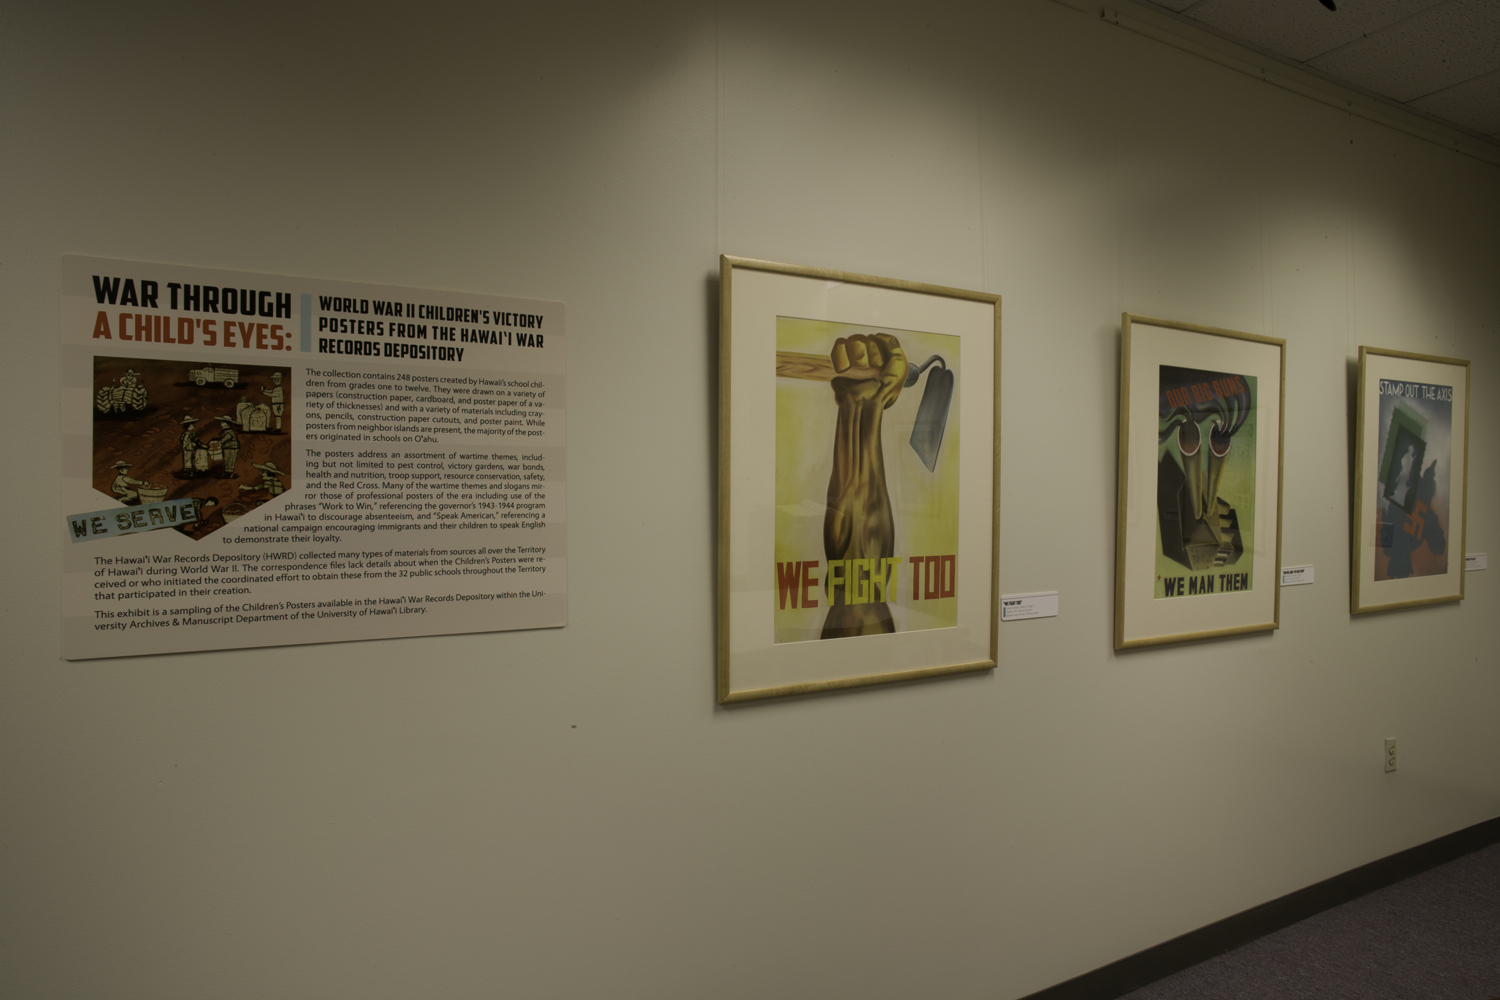 """Images of the """"War through a Child's Eye's: World War II Children's Victory Posters from the Hawaii War Records Depository"""" Exhibit."""